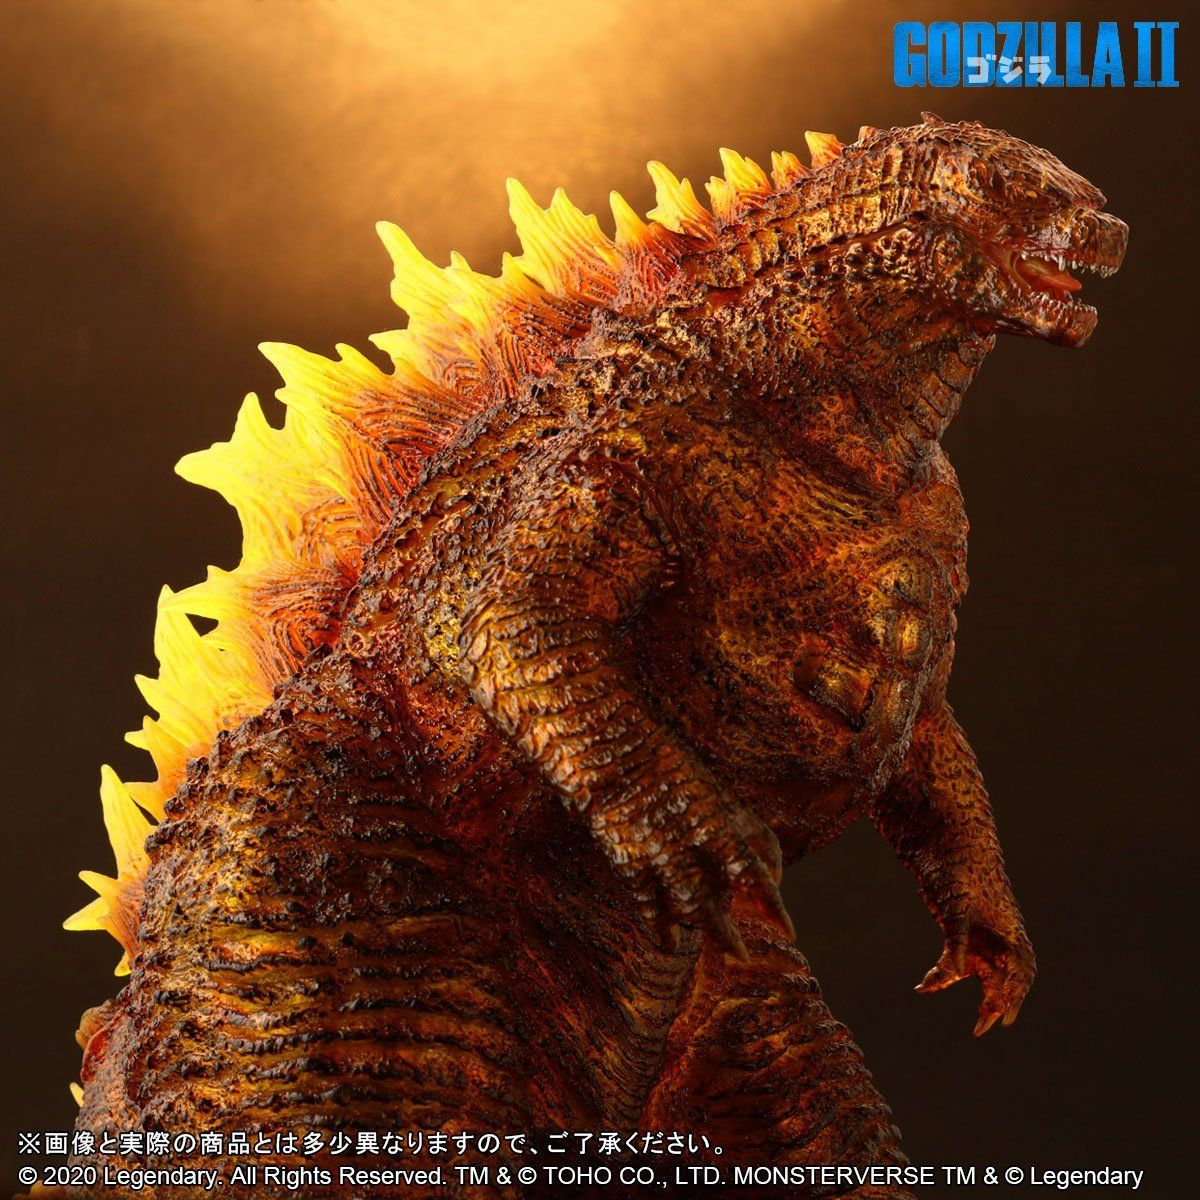 Burning Godzilla 2019 Statue X Plus 007